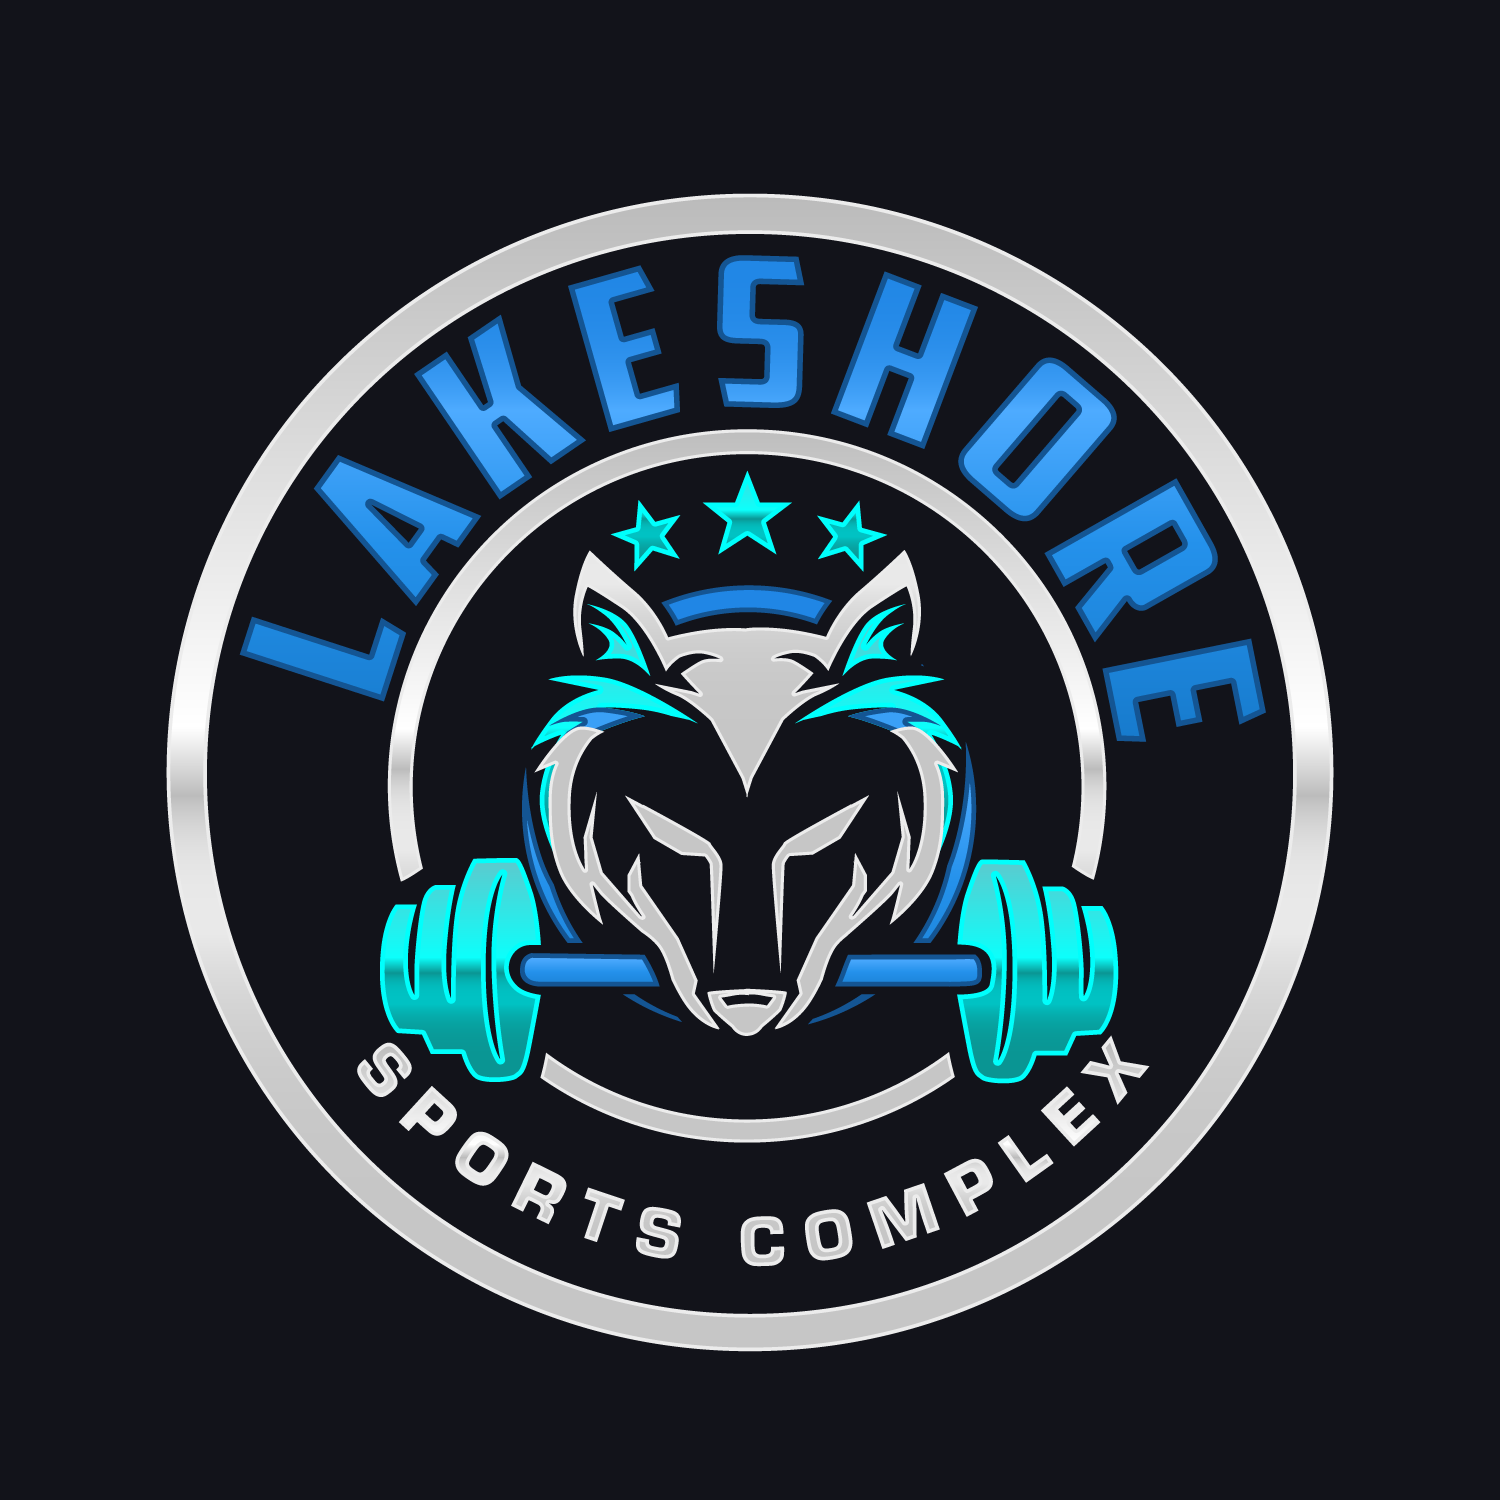 Lakeshore Sports Complex- I need a strong logo for athletes and training.   We will specialize in sports but also fitnes